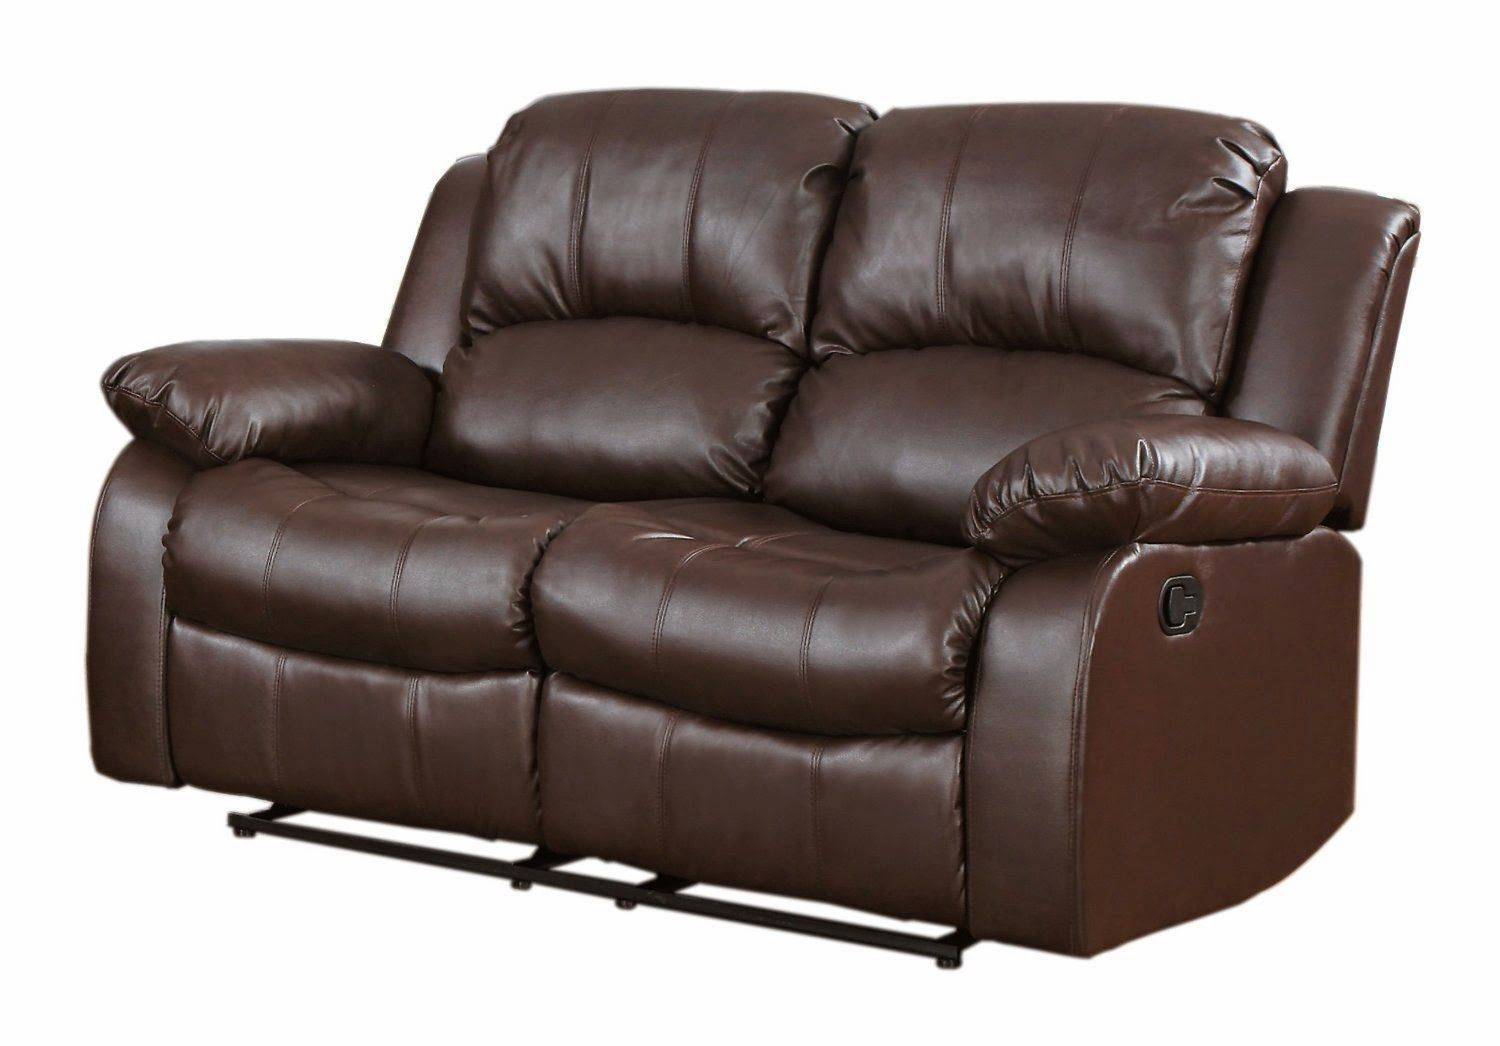 Best Leather Reclining Sofa Brands Reviews 2 Seat Reclining Leather Sofa Sectional Sofa With Recliner Couch And Loveseat Love Seat